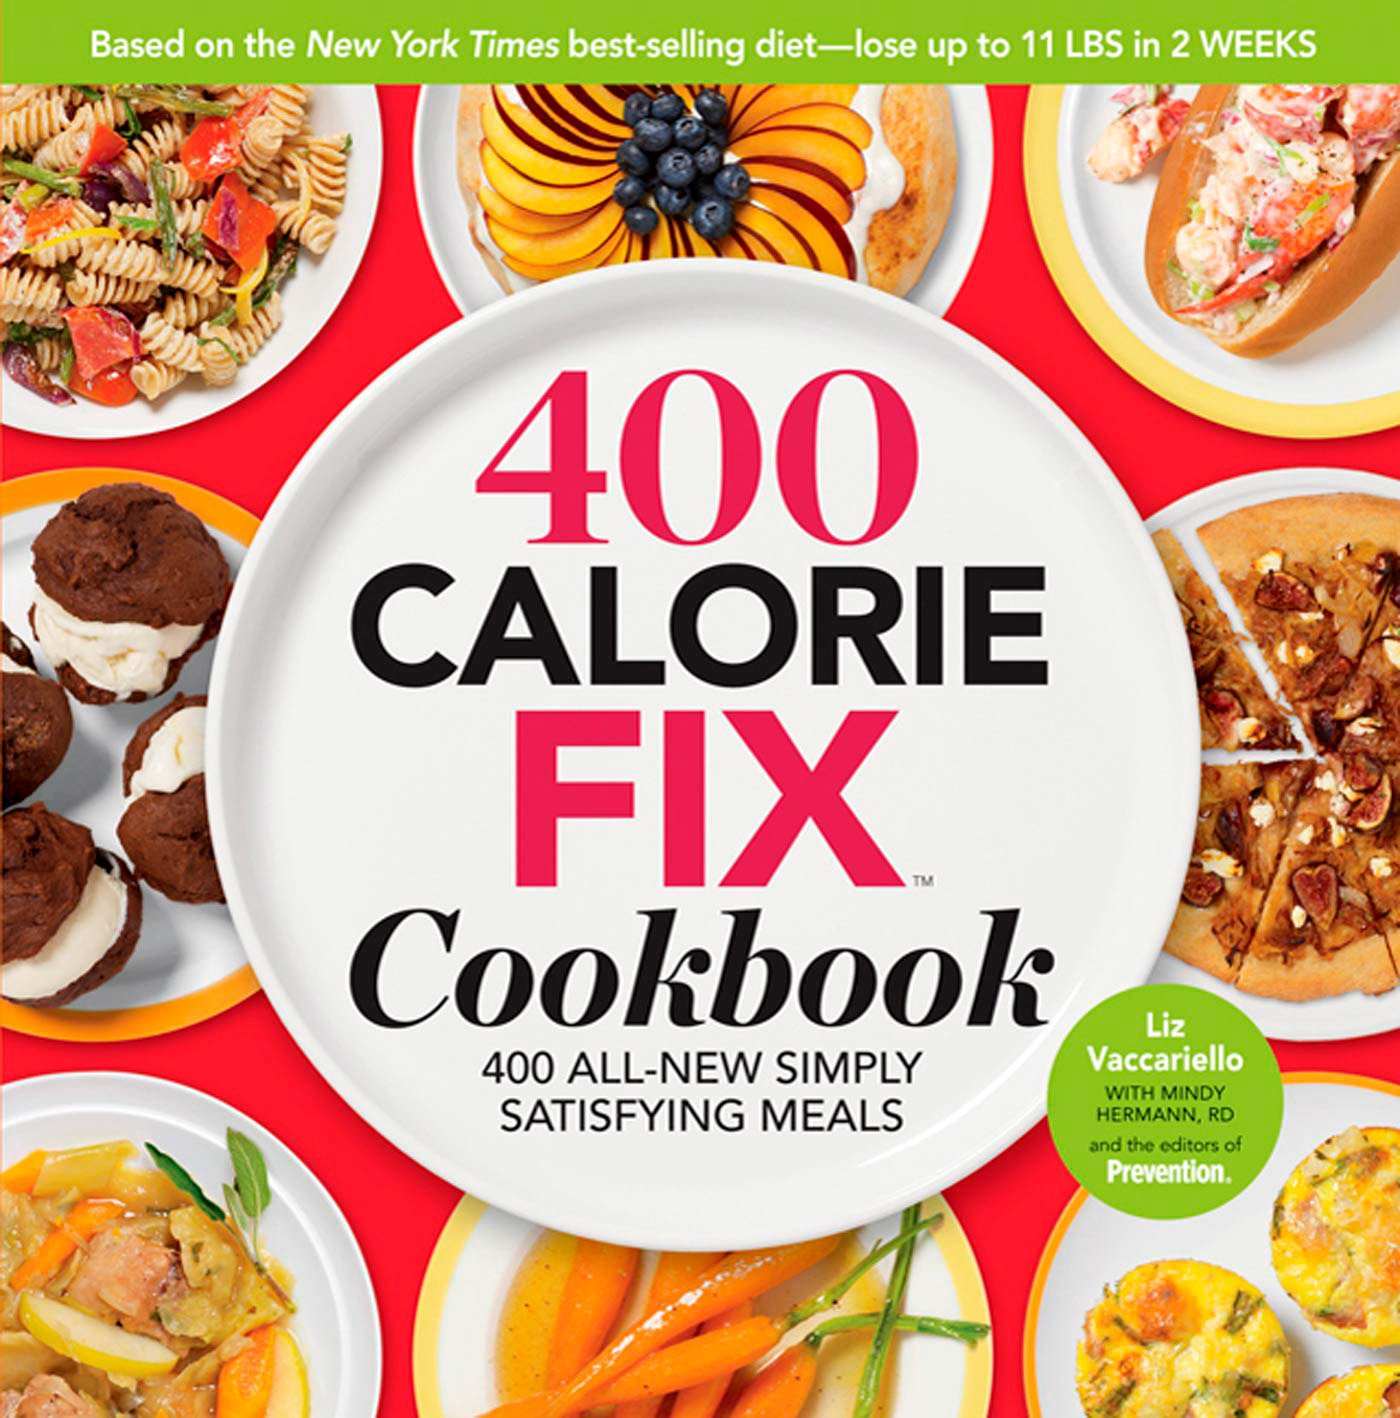 The 400 Calorie Fix Cookbook: 400 All-New Simply Satisfying Meals pdf epub